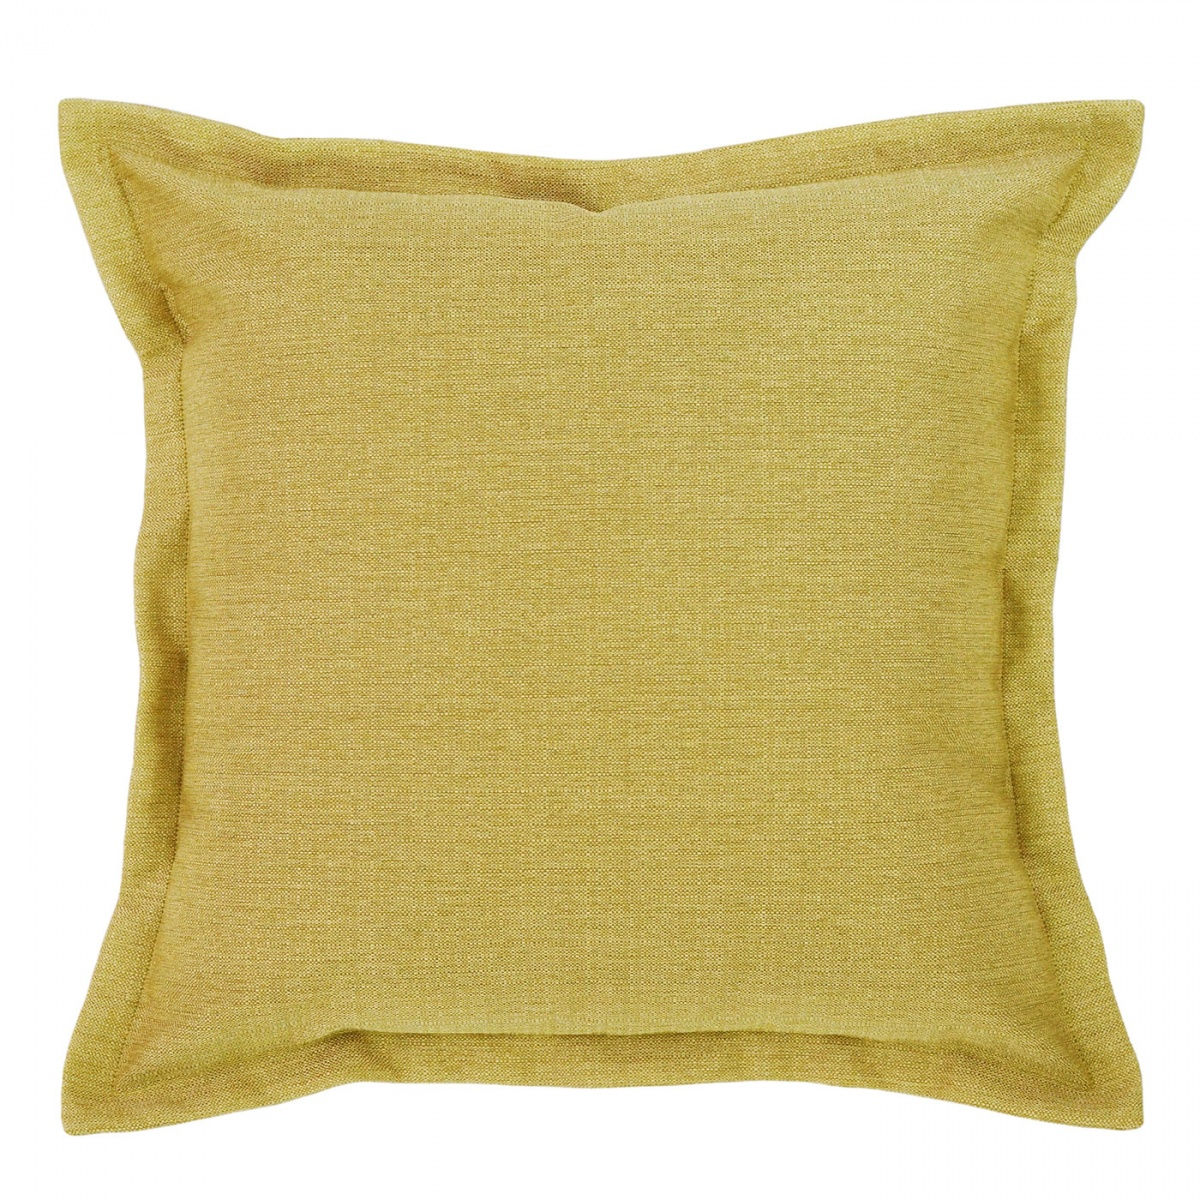 Vegas Chartreuse Cushion with Flange - 45x45cm